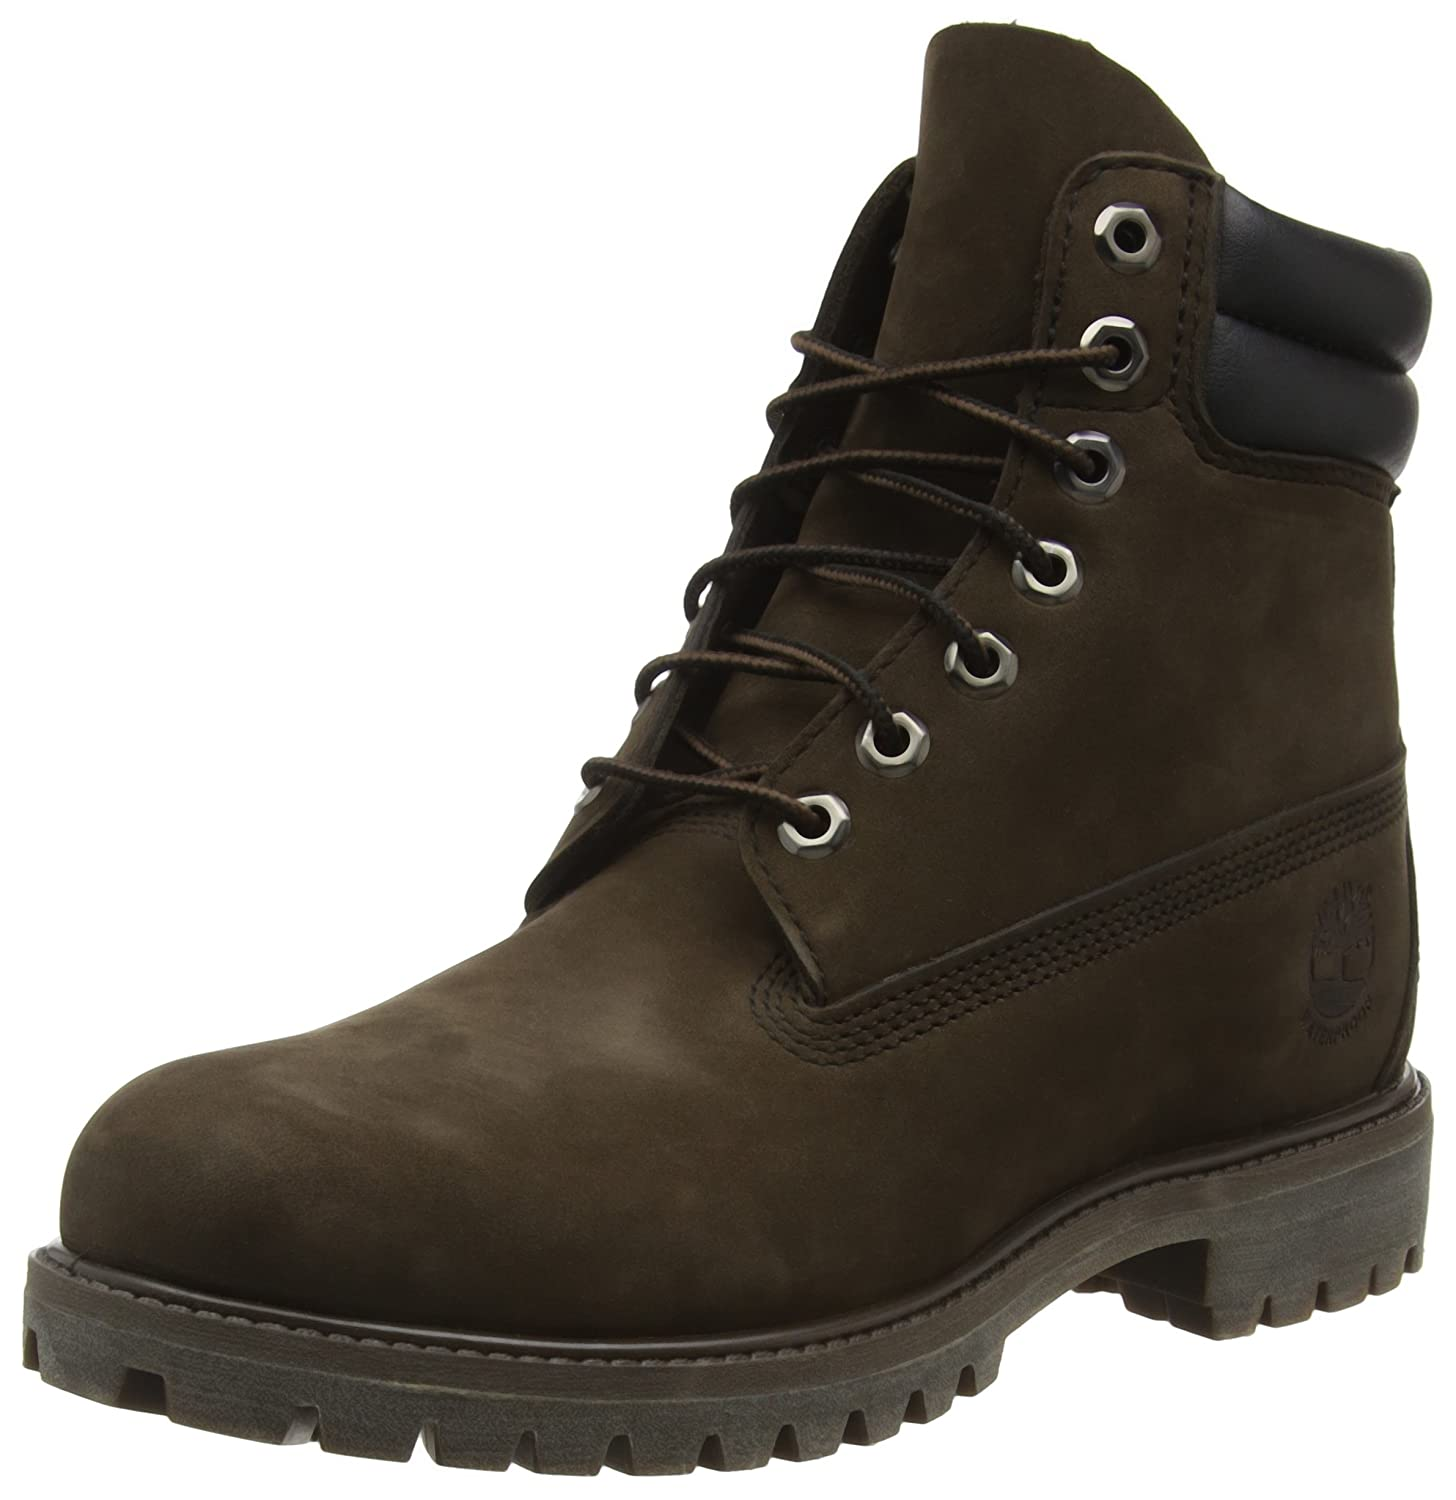 TALLA 49 EU. Timberland 6 In Double Collar Waterproof (Wide Fit), Botas para Hombre